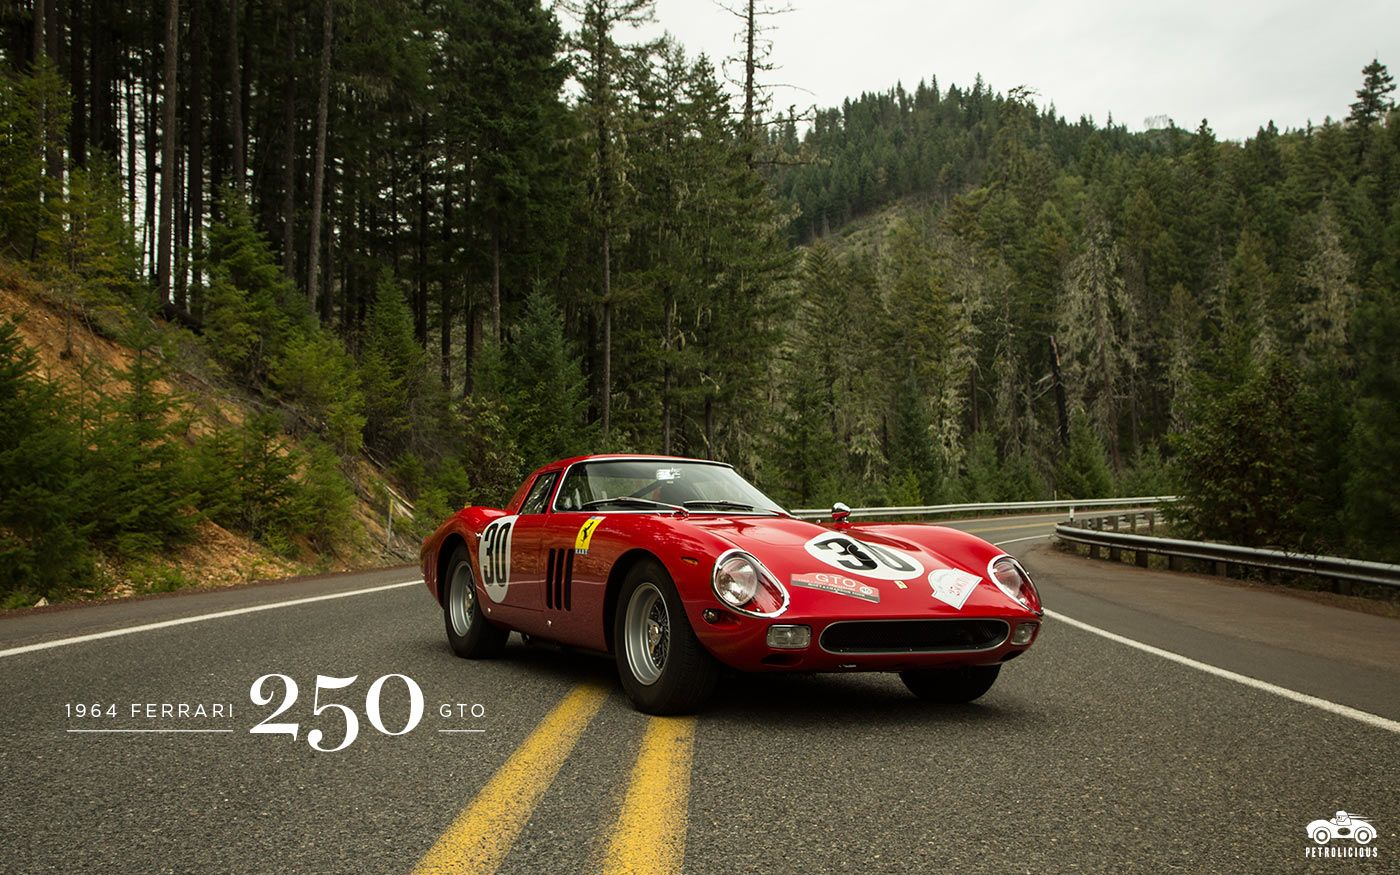 1964 Ferrari 250 GTO Wallpapers cars all makes and models Gto 1400x875